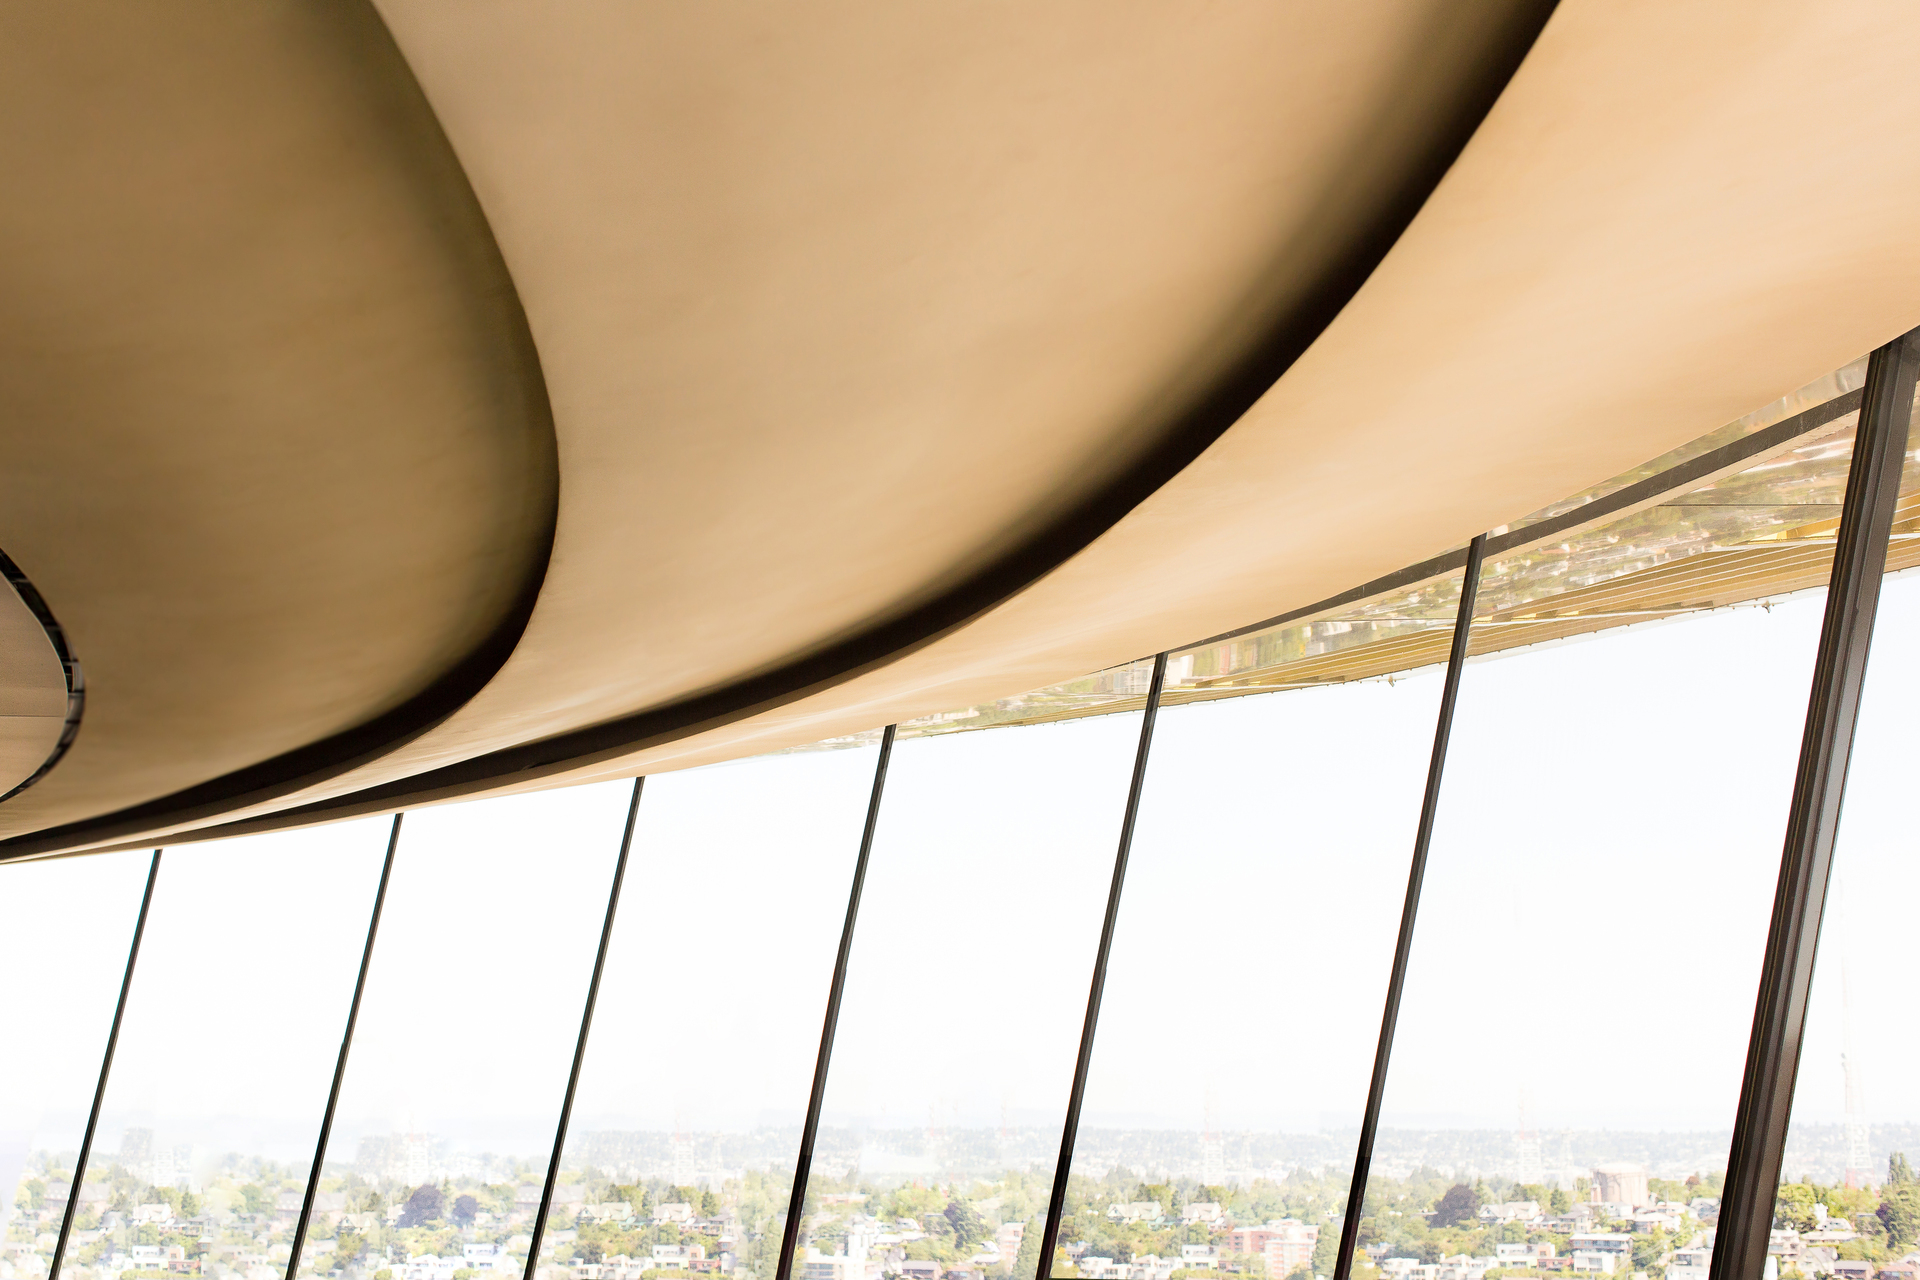 Fellert's sound absorbing materials can truly be used anywhere. Here you can see Fellert's Even Better Silk applied to the ceiling of the Space Needle in Seattle, Washington.